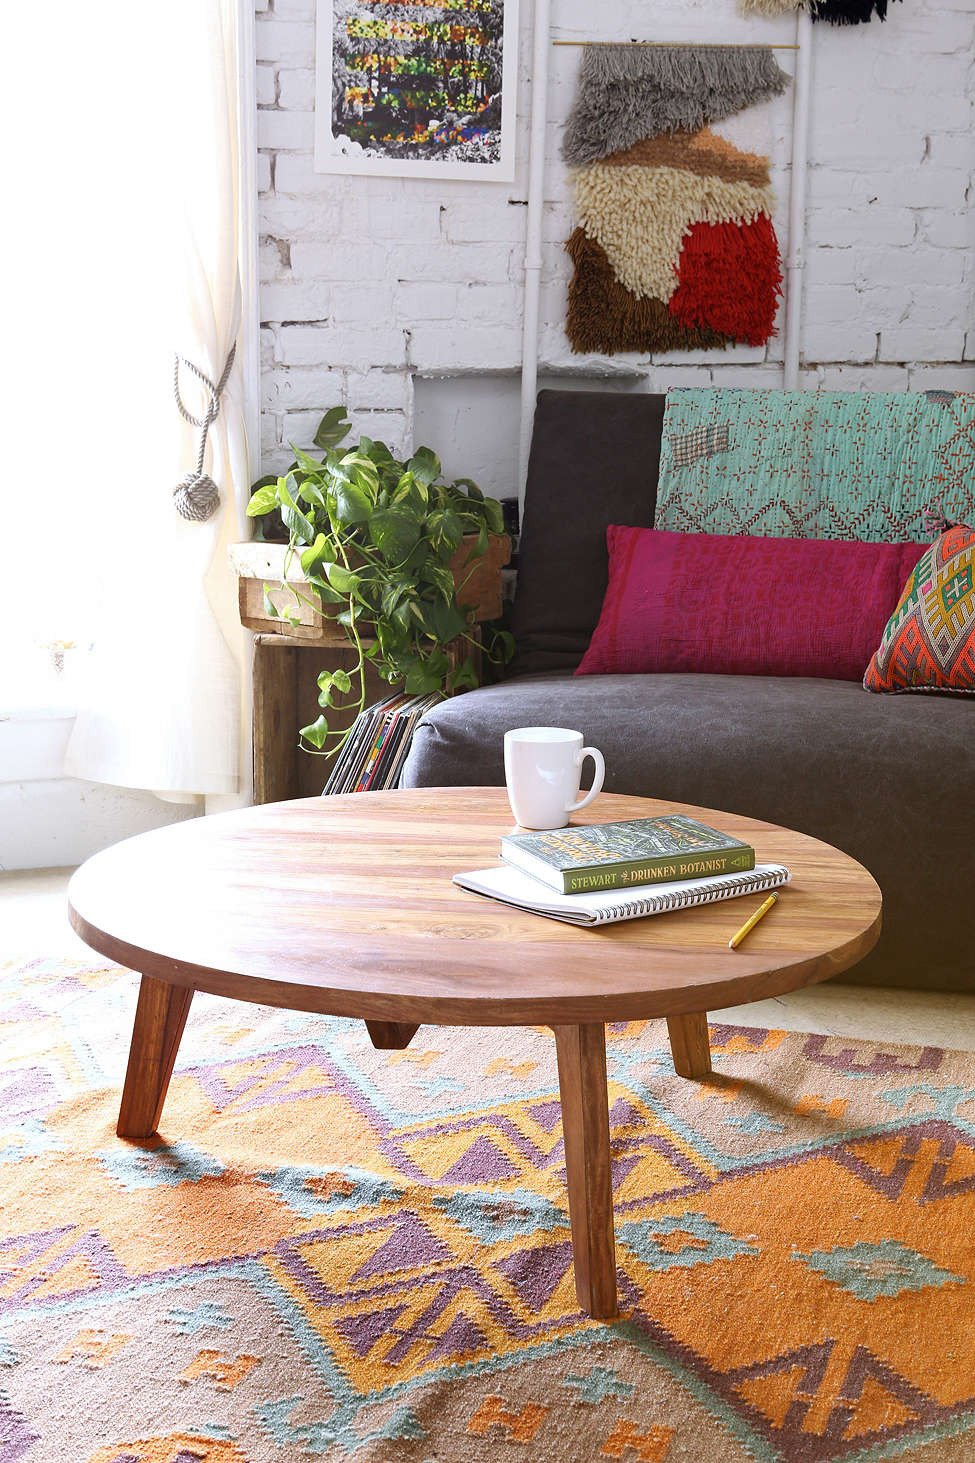 Round Coffee Table Decor Ideas Fresh Round Coffee Table Decor Ideas the Beauty Of Your Living Room Hupehome